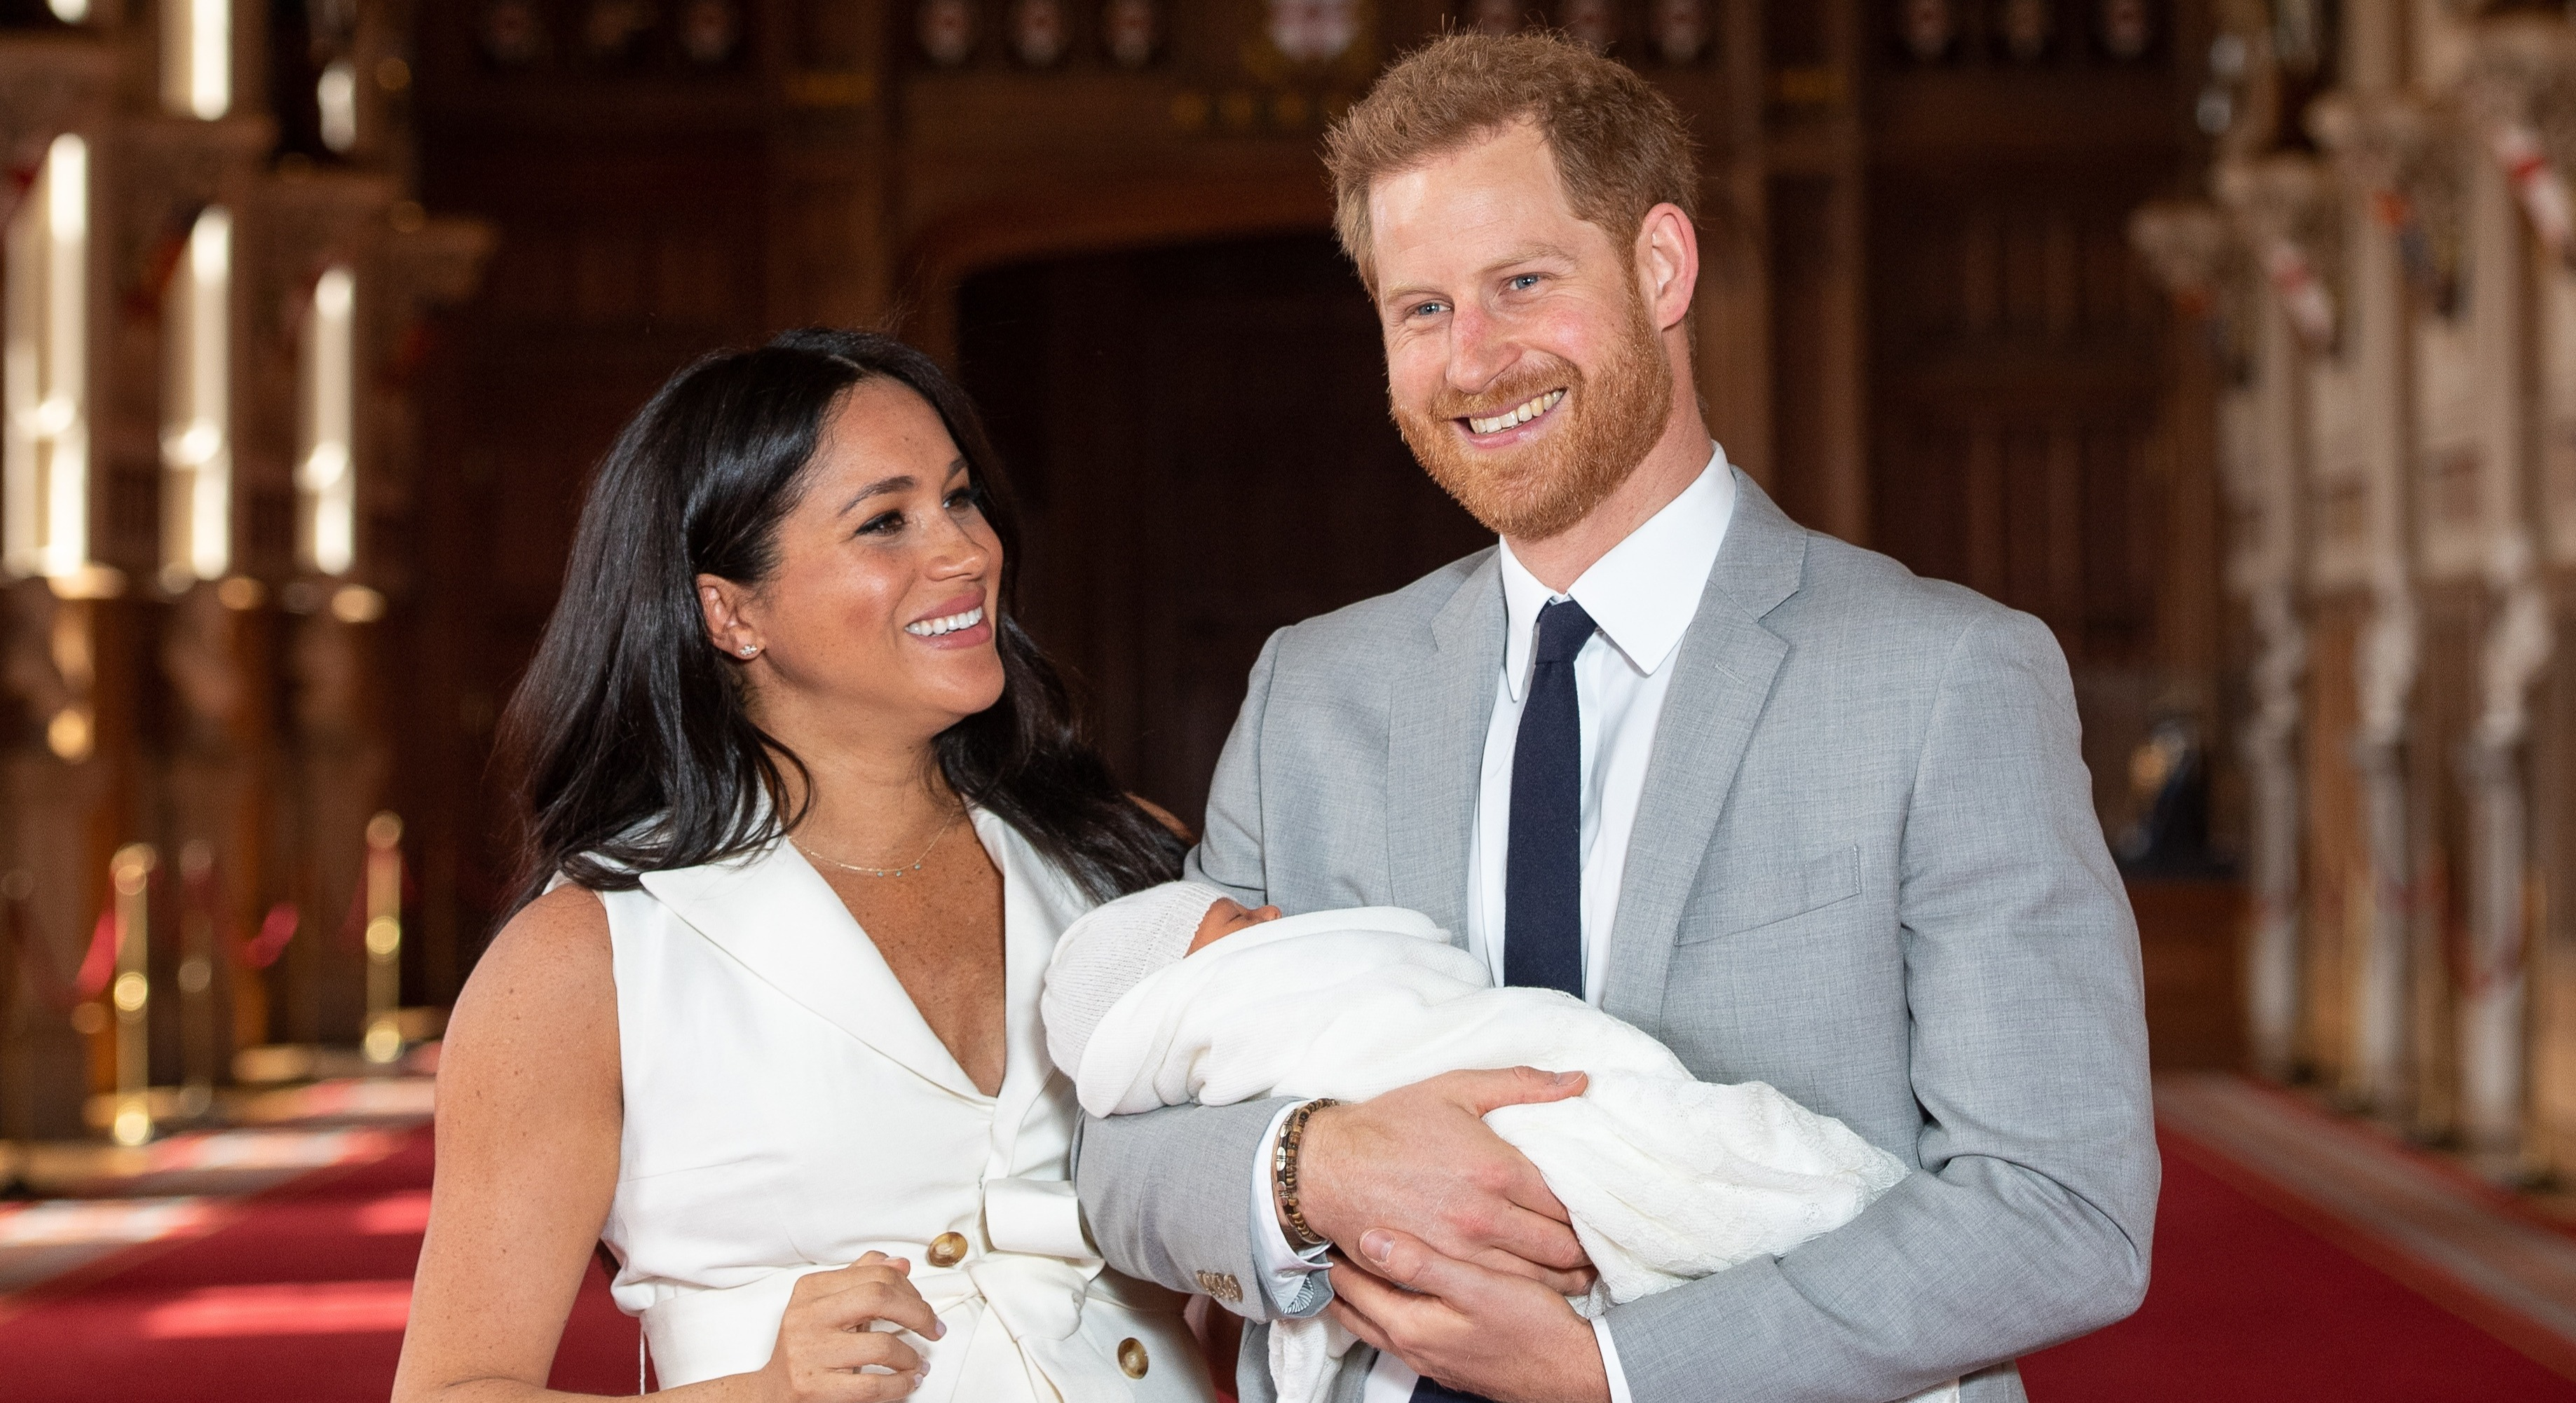 Prince Harry and Meghan Markle are reported to have hoped to move in with the Queen at Windsor Castle [Image: Getty]